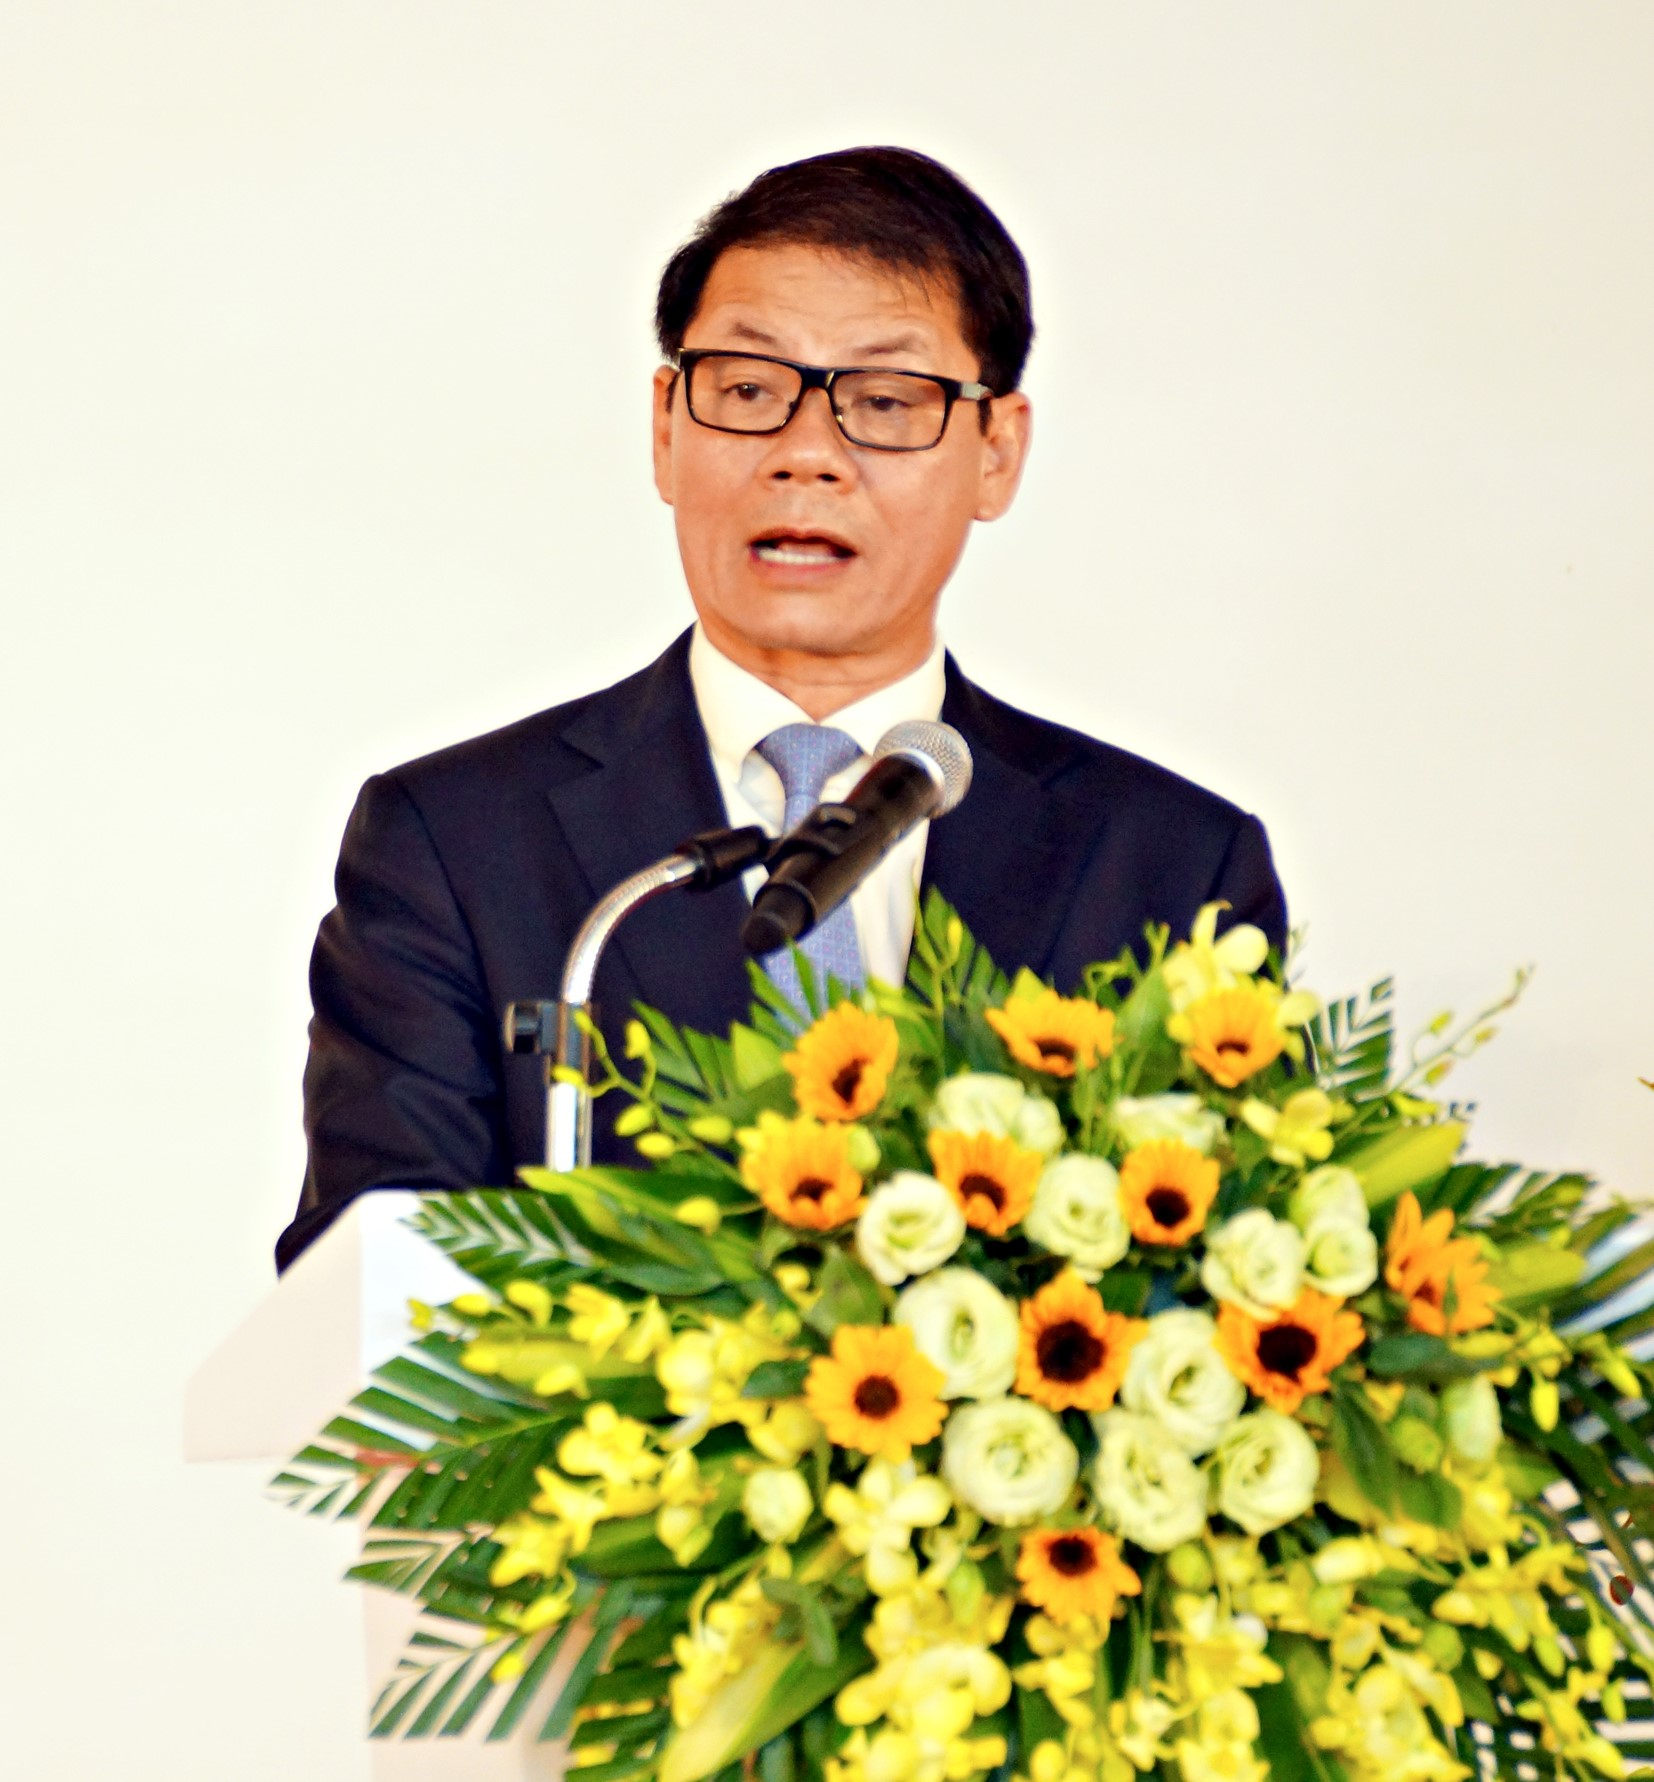 THACO's Chairman Tran Ba Duong gives his speech at the event